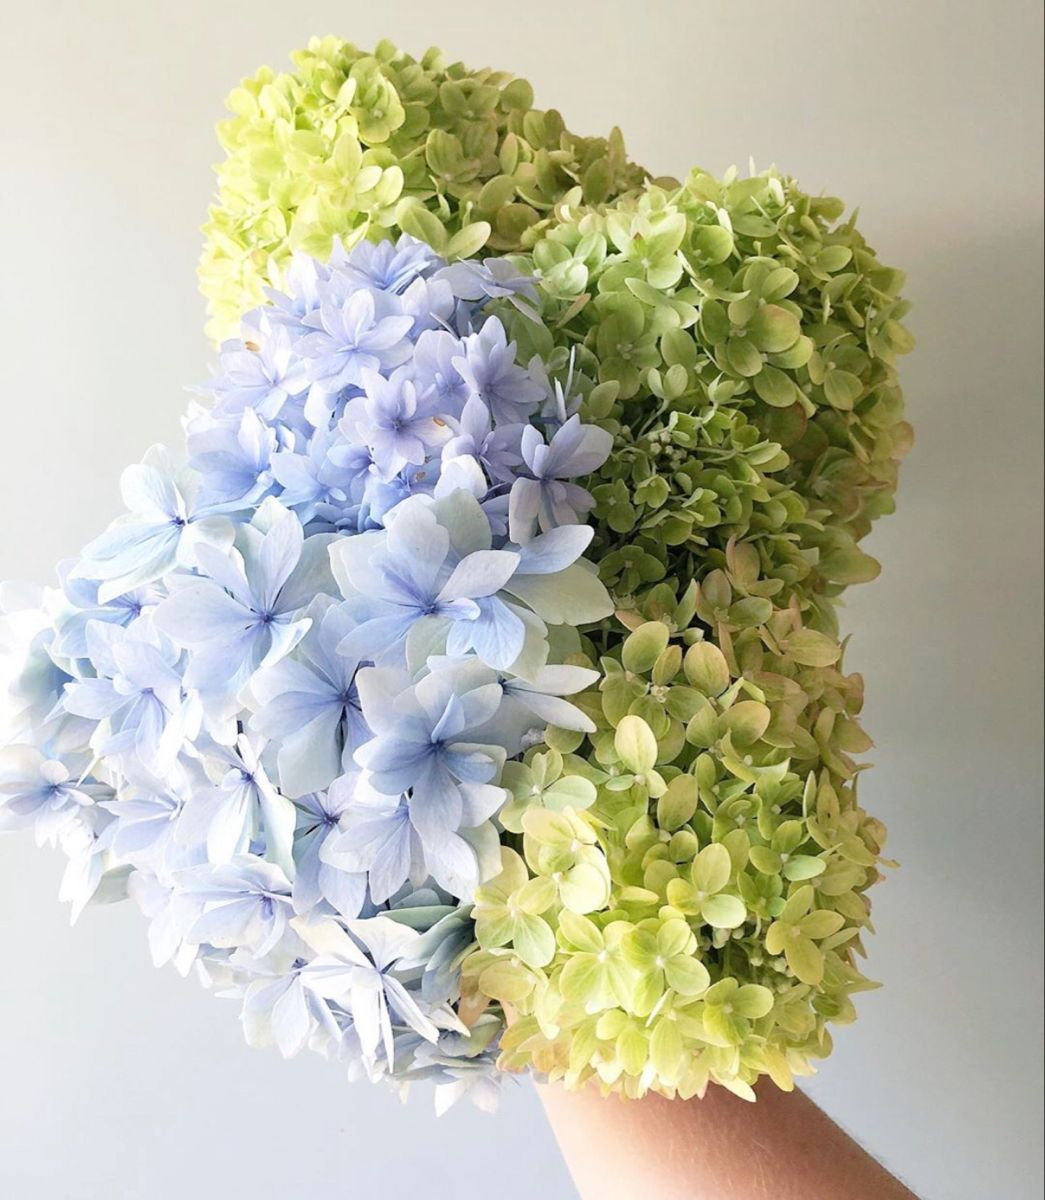 Hydrangea In 2020 Flowers For Sale Hydrangea Colors Wholesale Flowers